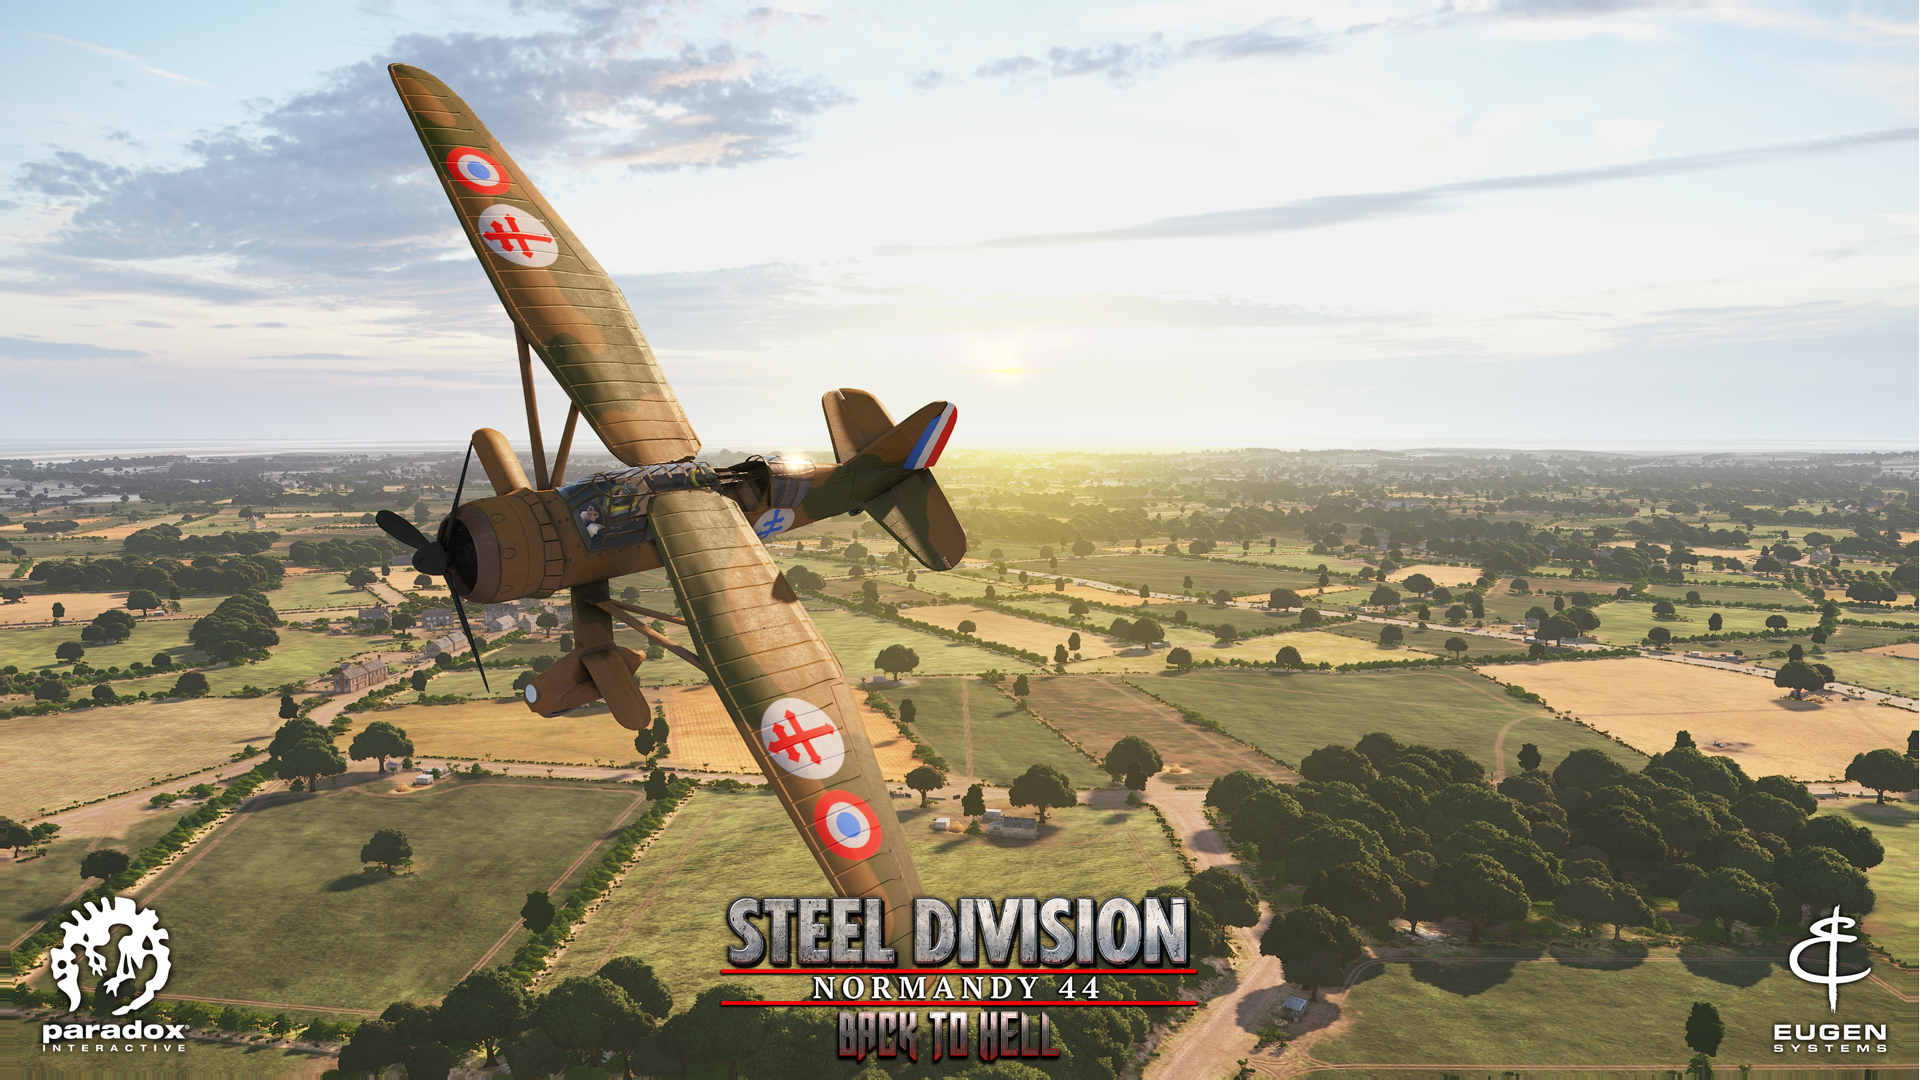 Steel_Division_Normandy_44_Back_Into_Hell_Westland_Lysander_01